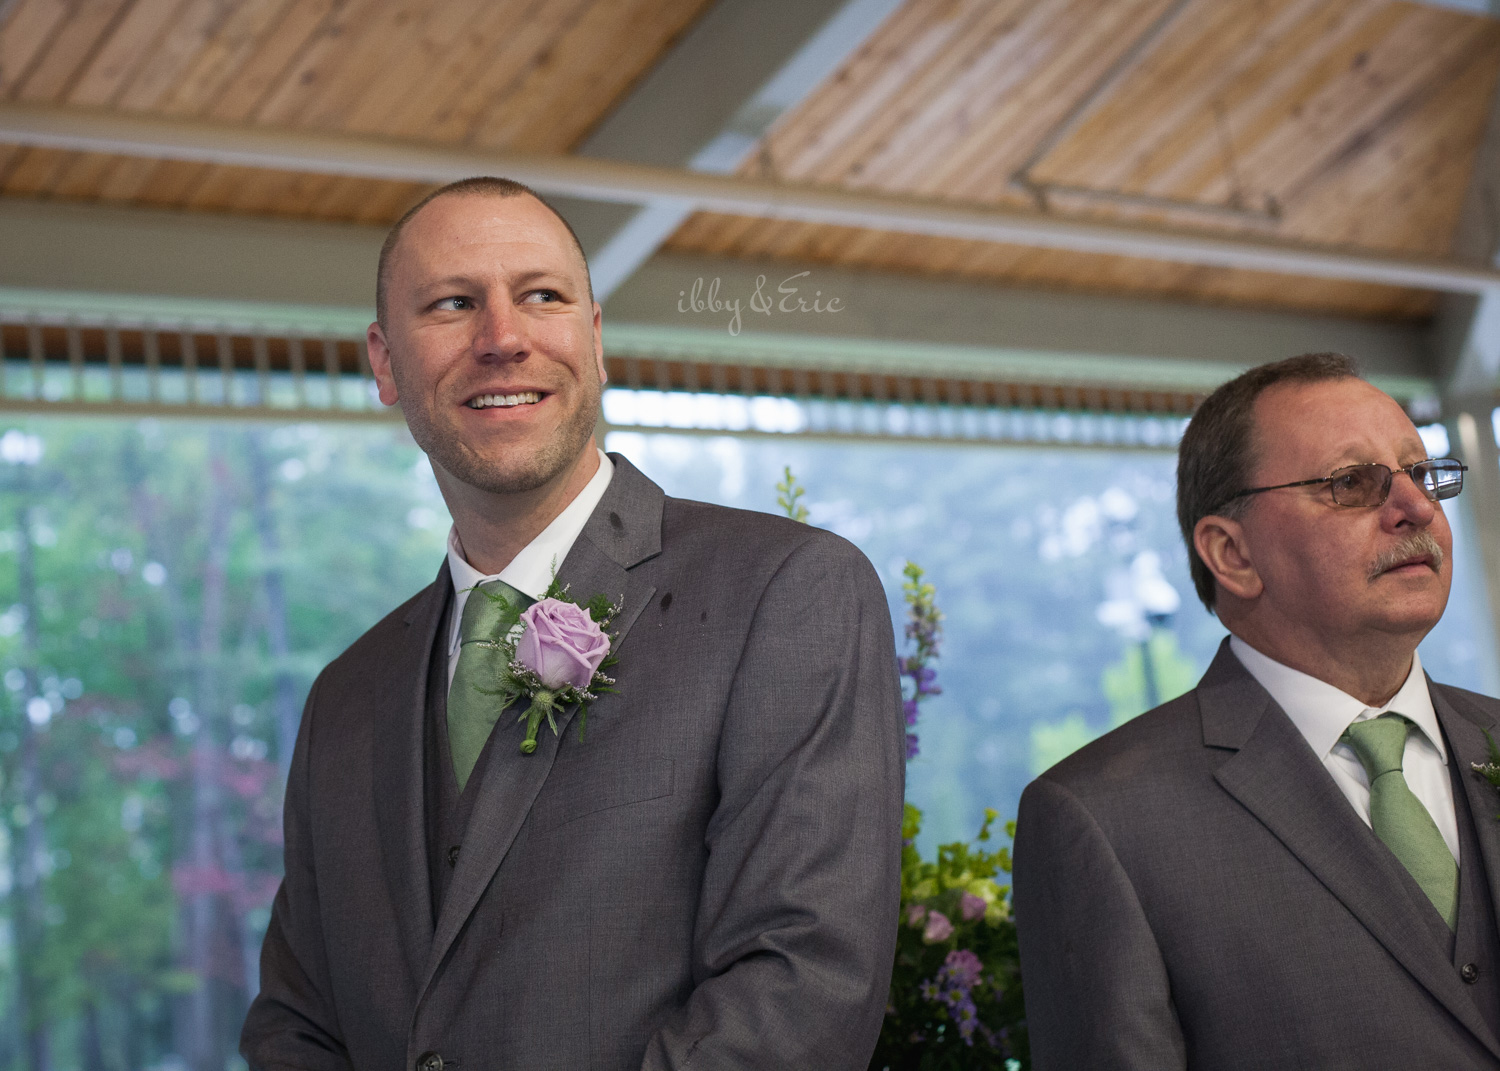 The groom wearing a gray suit and green tie smiles as he sees his bride walk down the aisle.